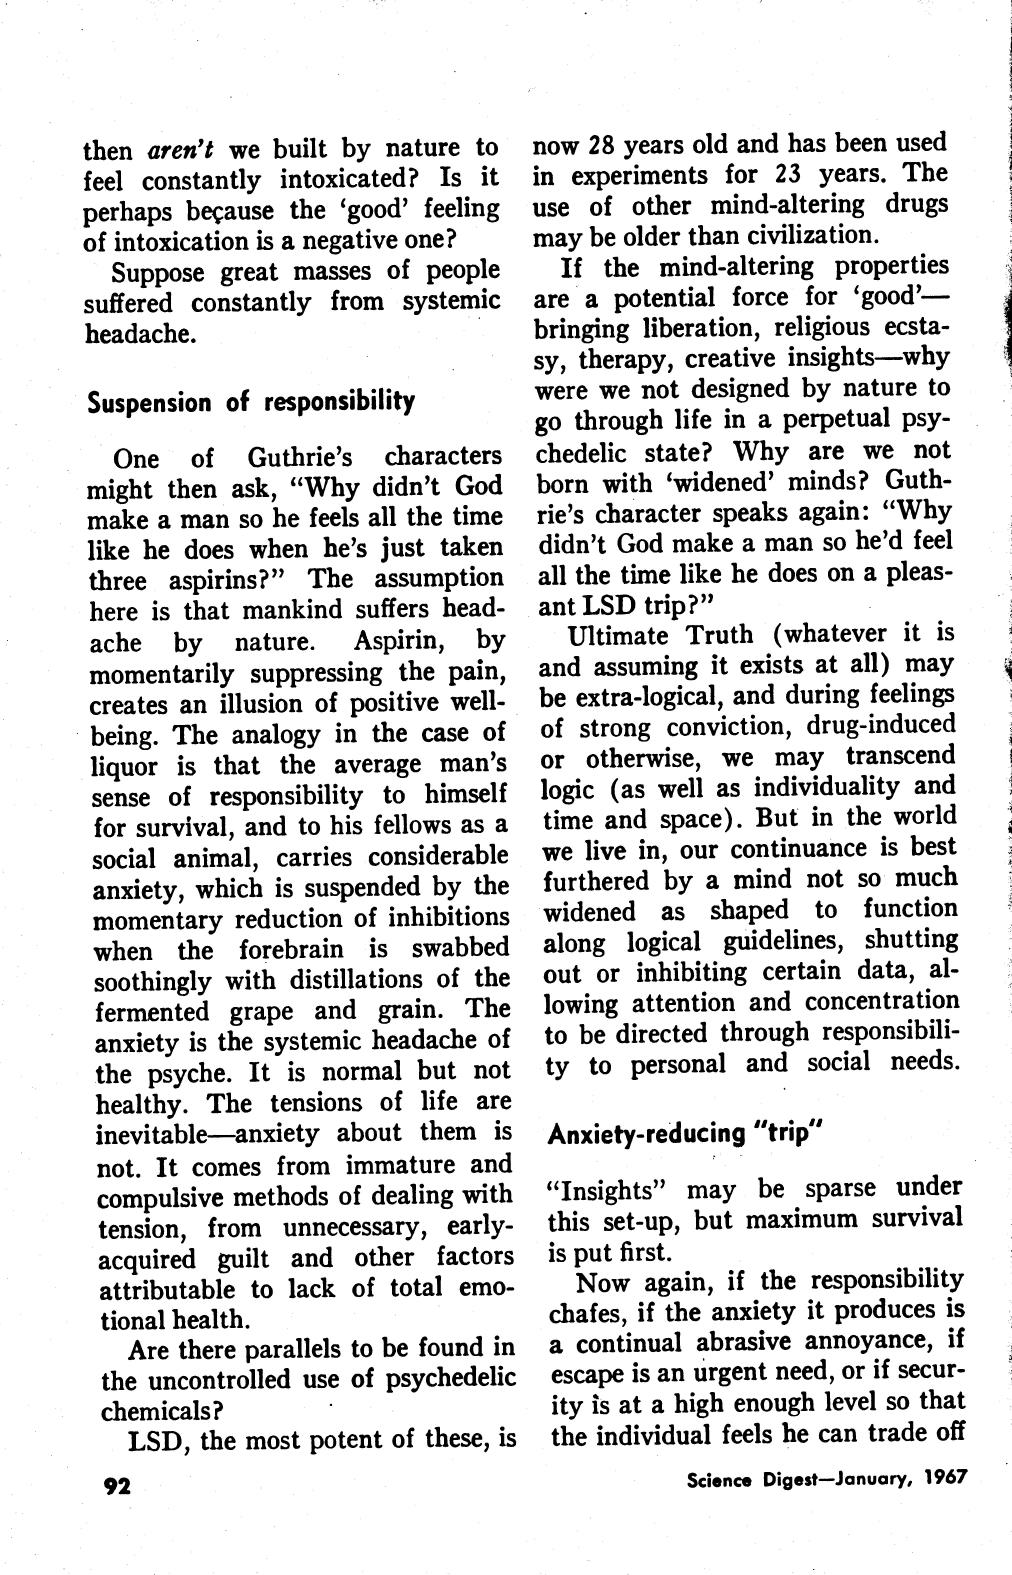 Science Digest, The Hugh Downs Column - Aspirin, Liquor and LSD January 1967 page 2